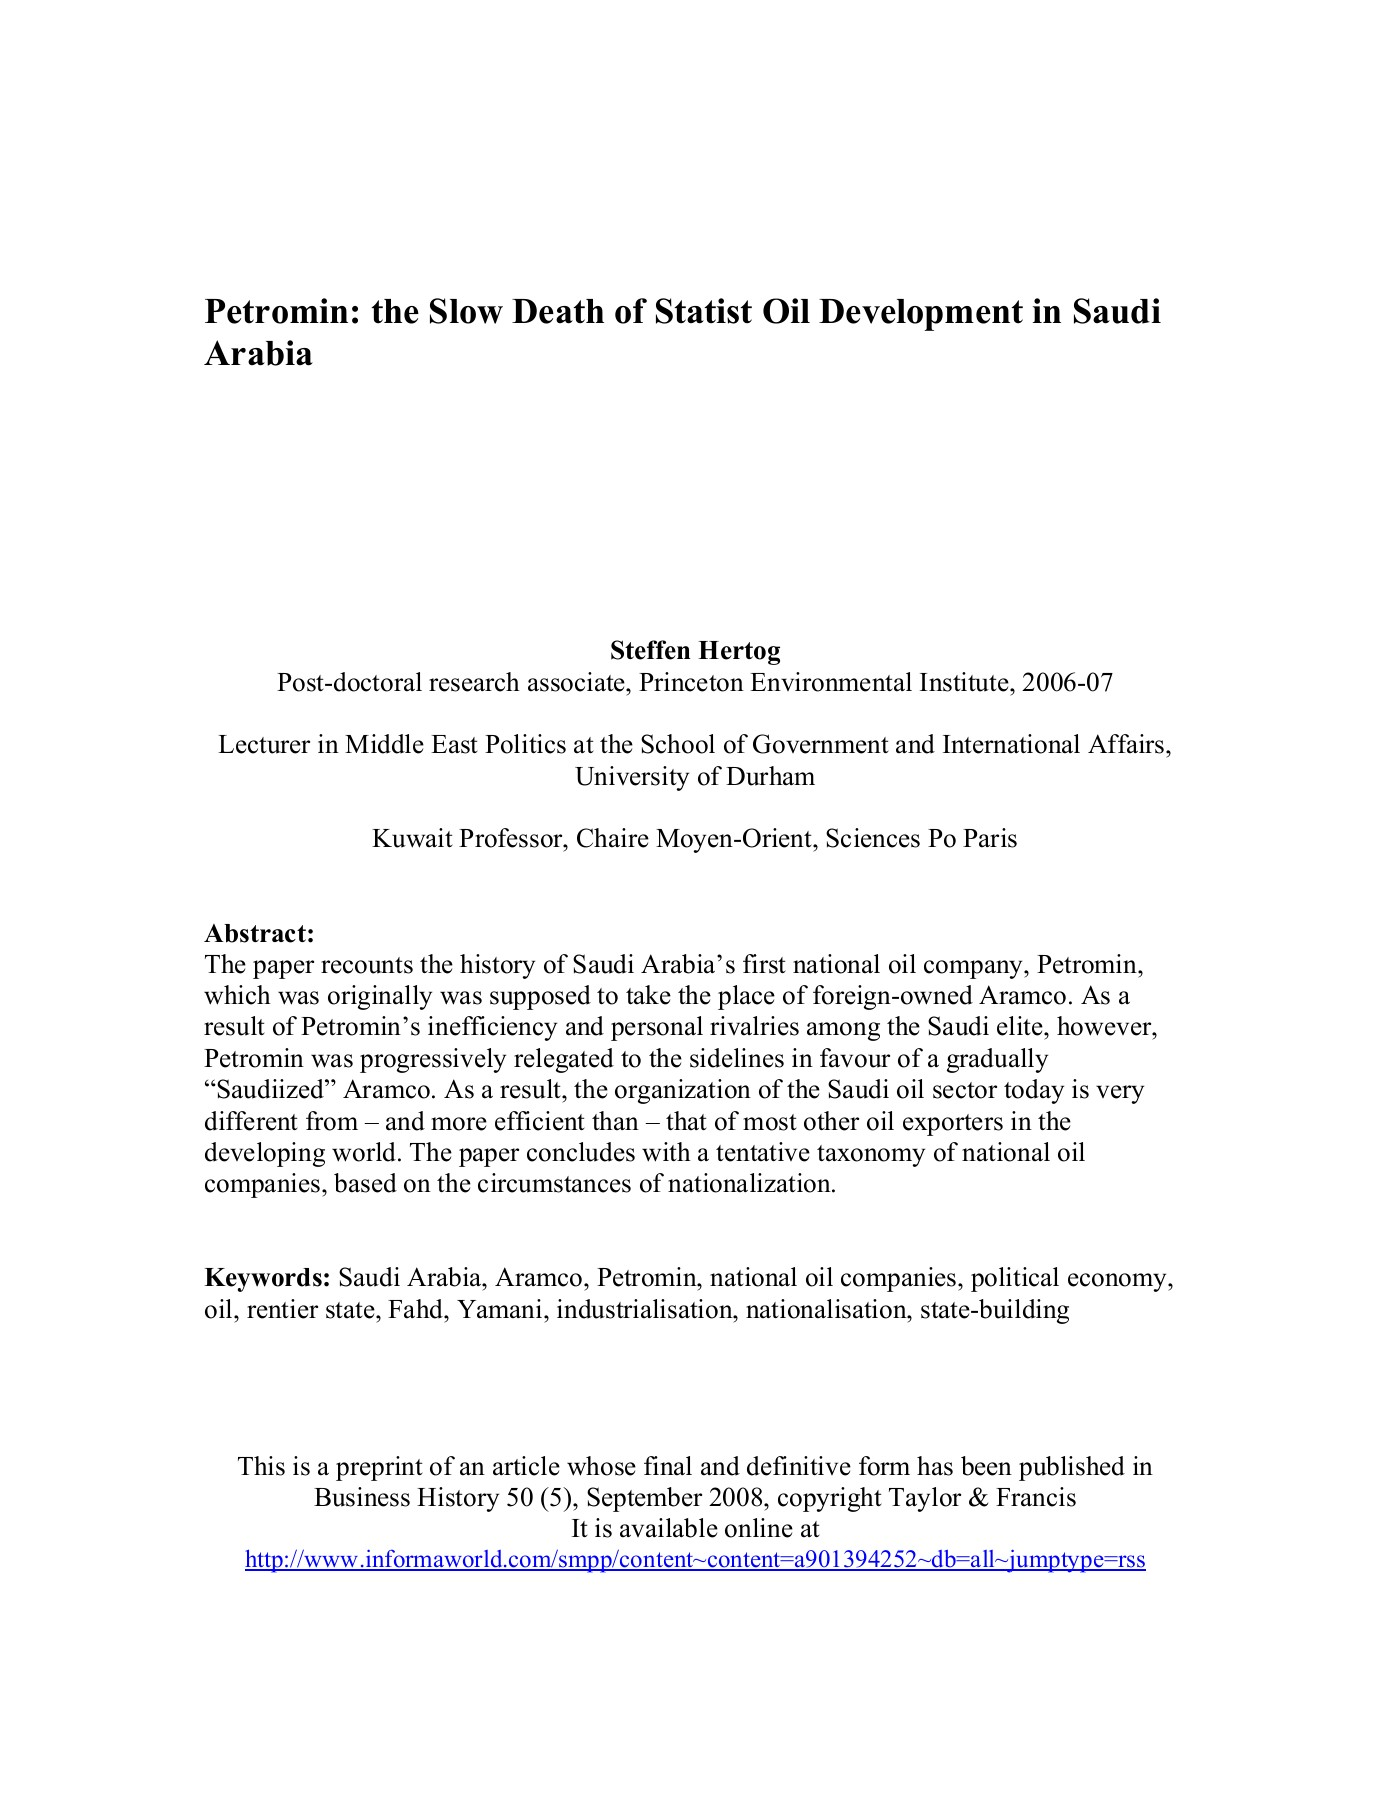 Petromin the Slow Death of Statist Oil Development in     Pages 1